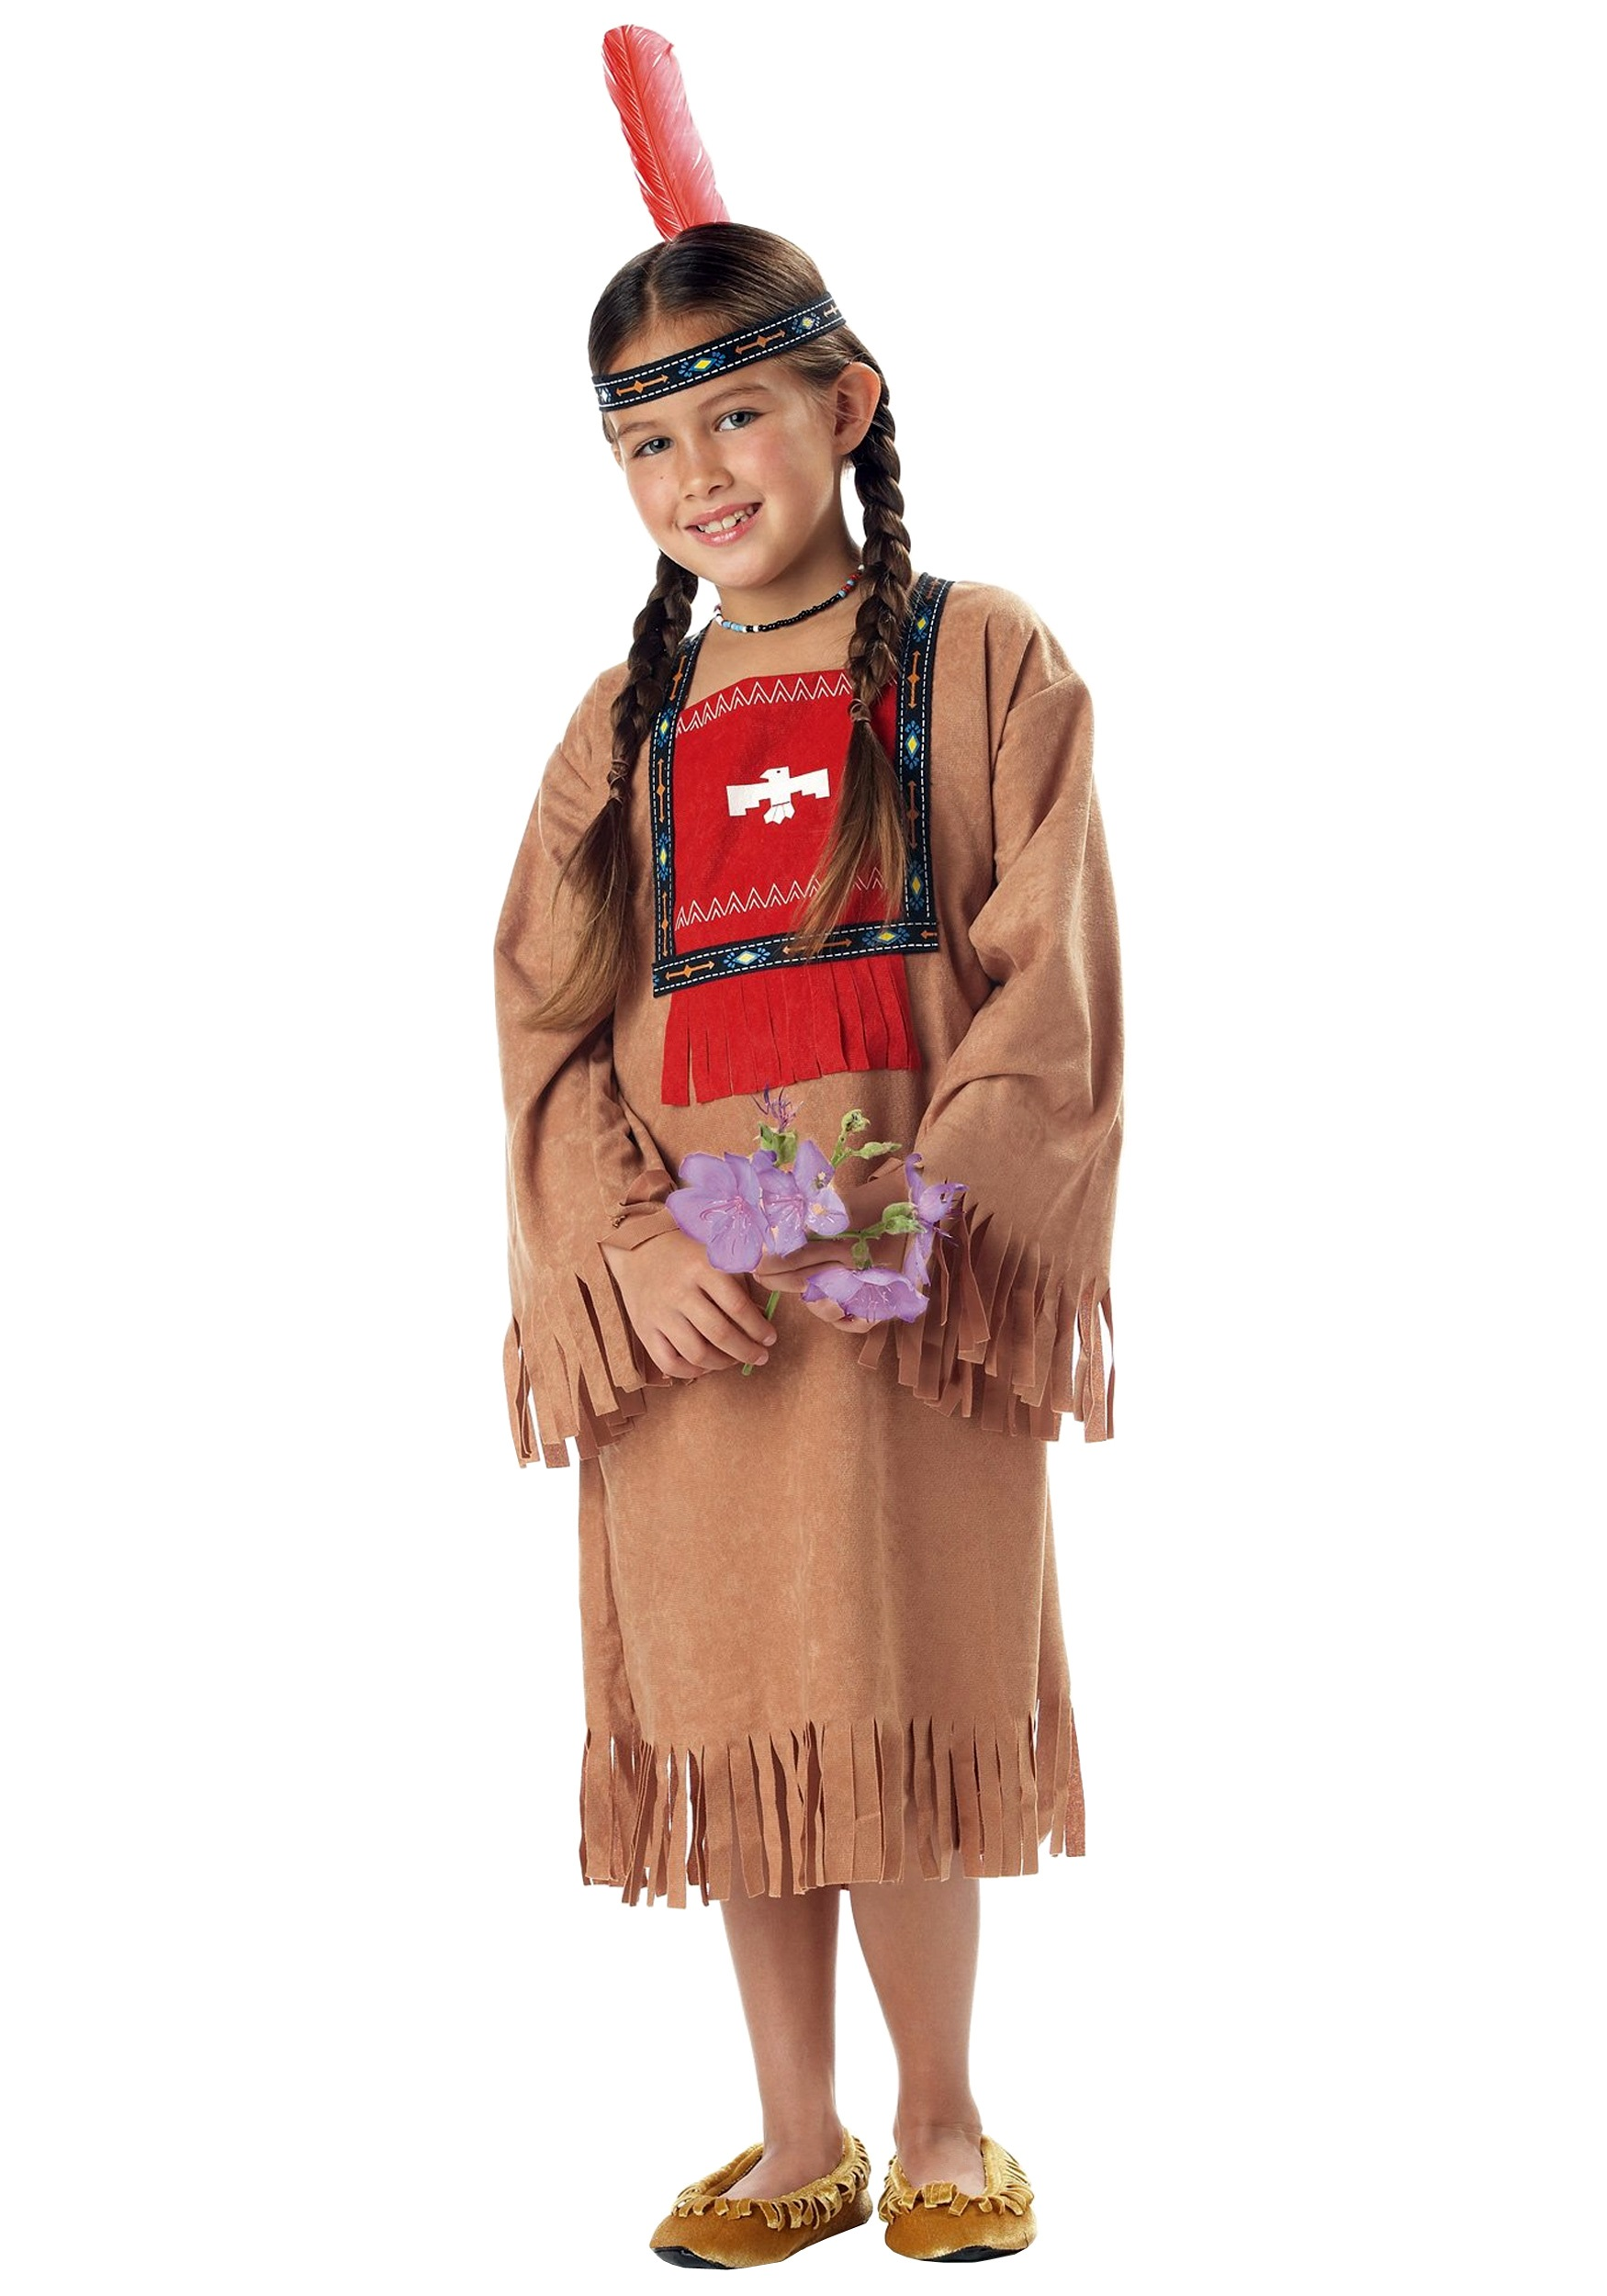 Child Indian Girl Costume  sc 1 st  Halloween Costumes & Child Indian Girl Costume - Halloween Costume Ideas 2016